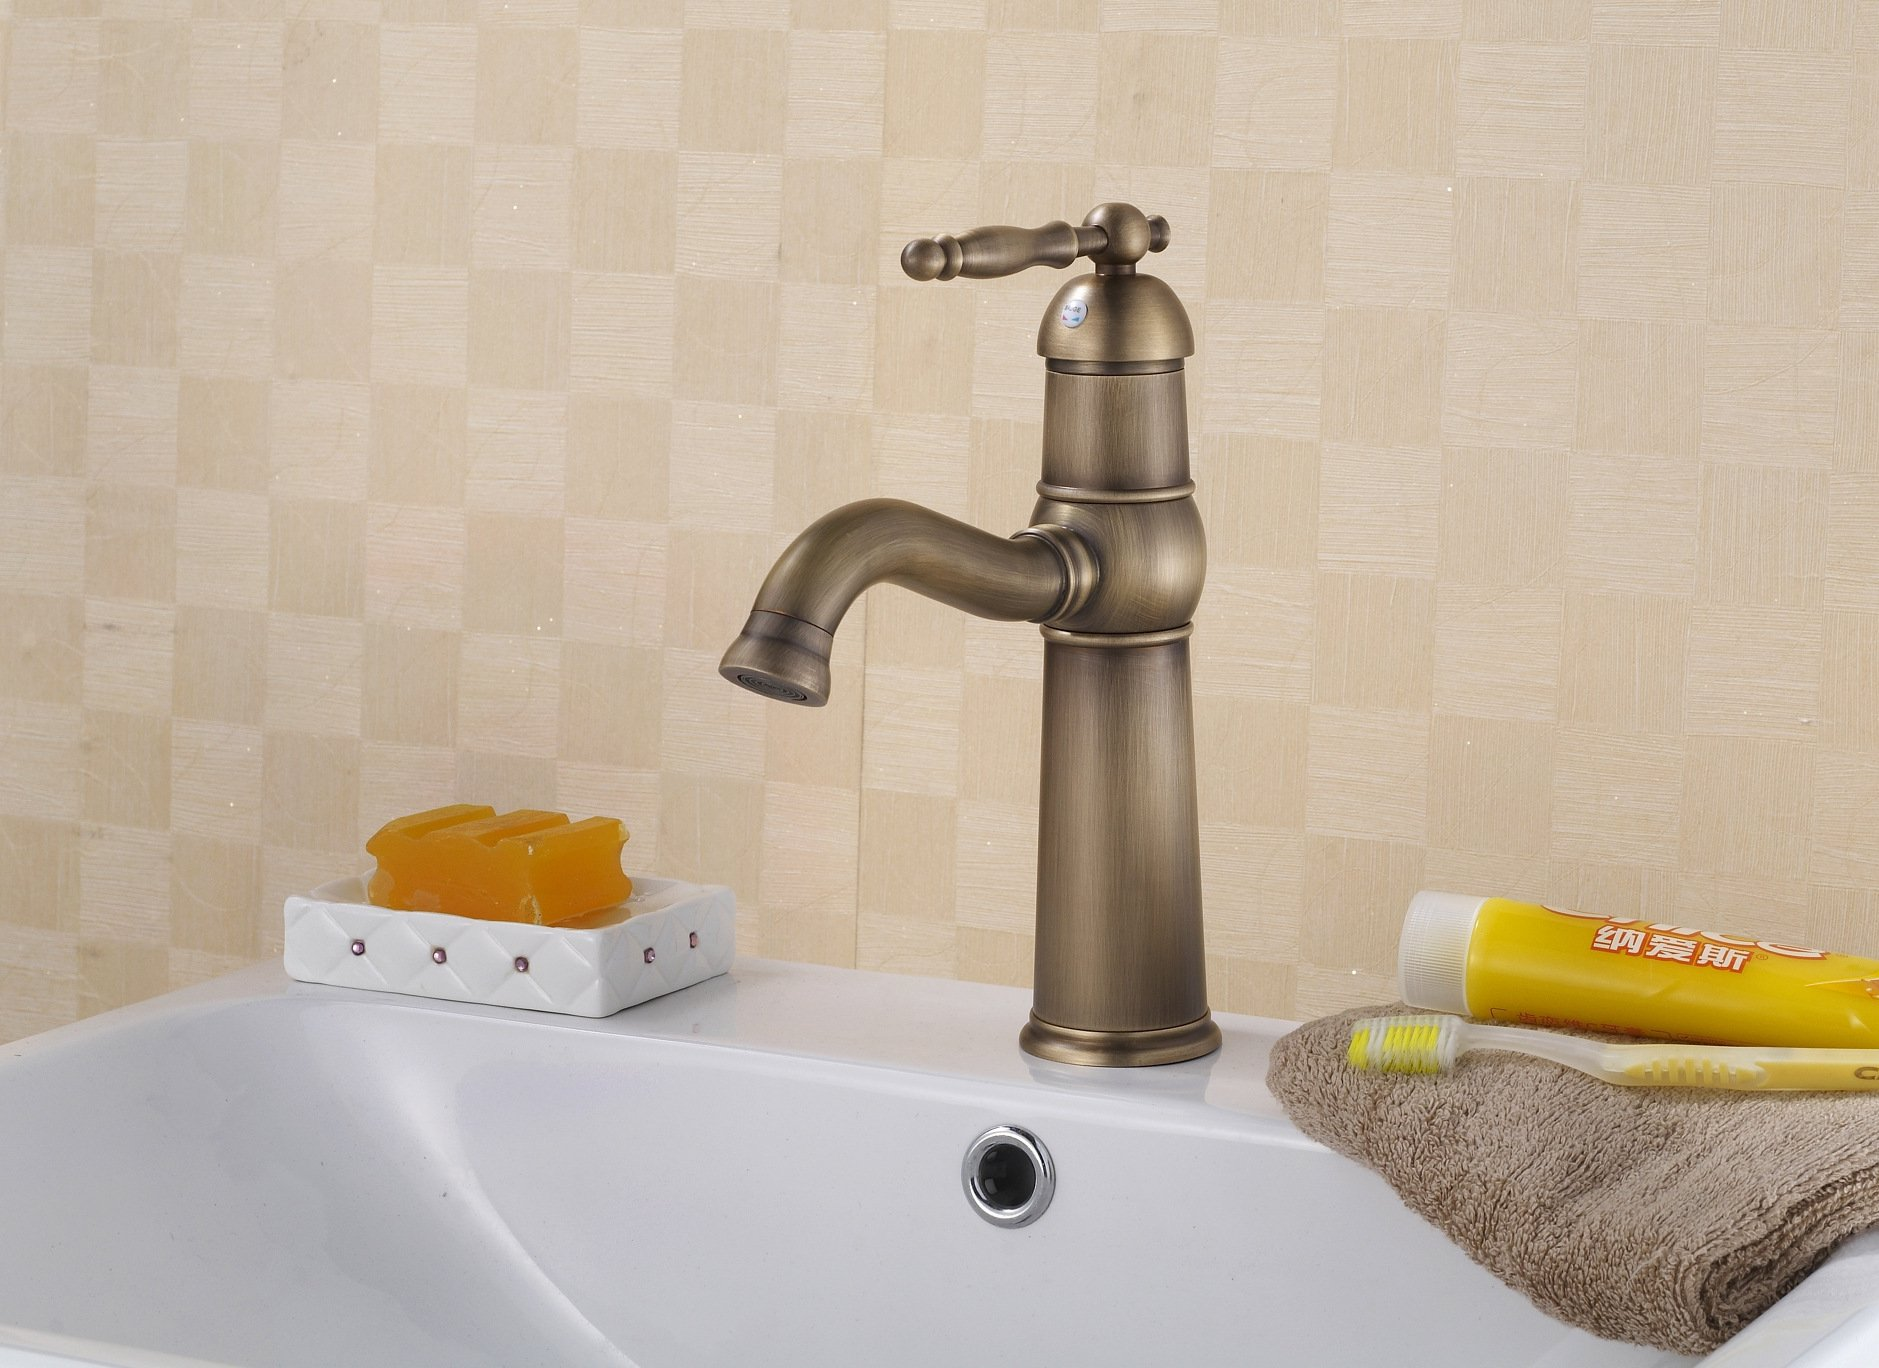 LI Copper-wrench continental air basin faucet mixing valve